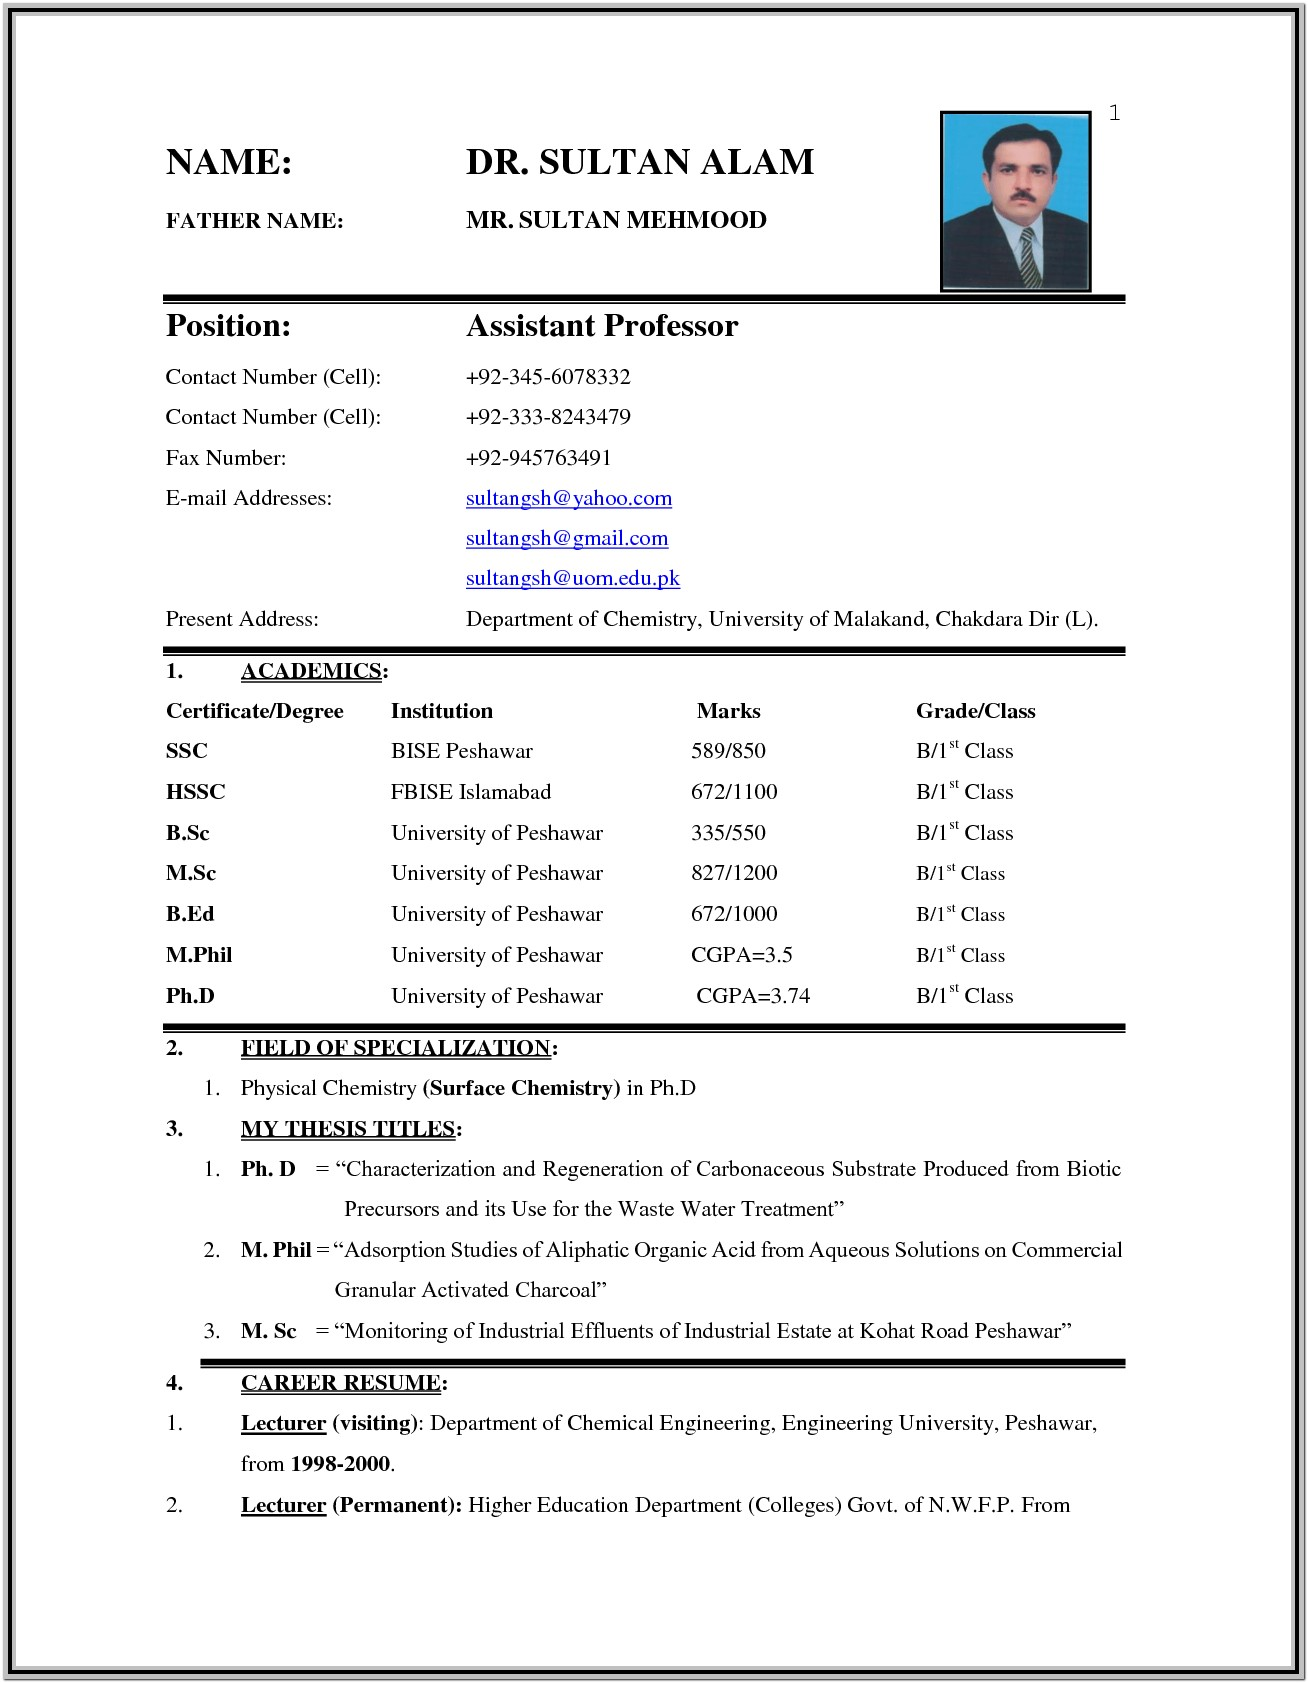 Biodata Resume Format Free Download